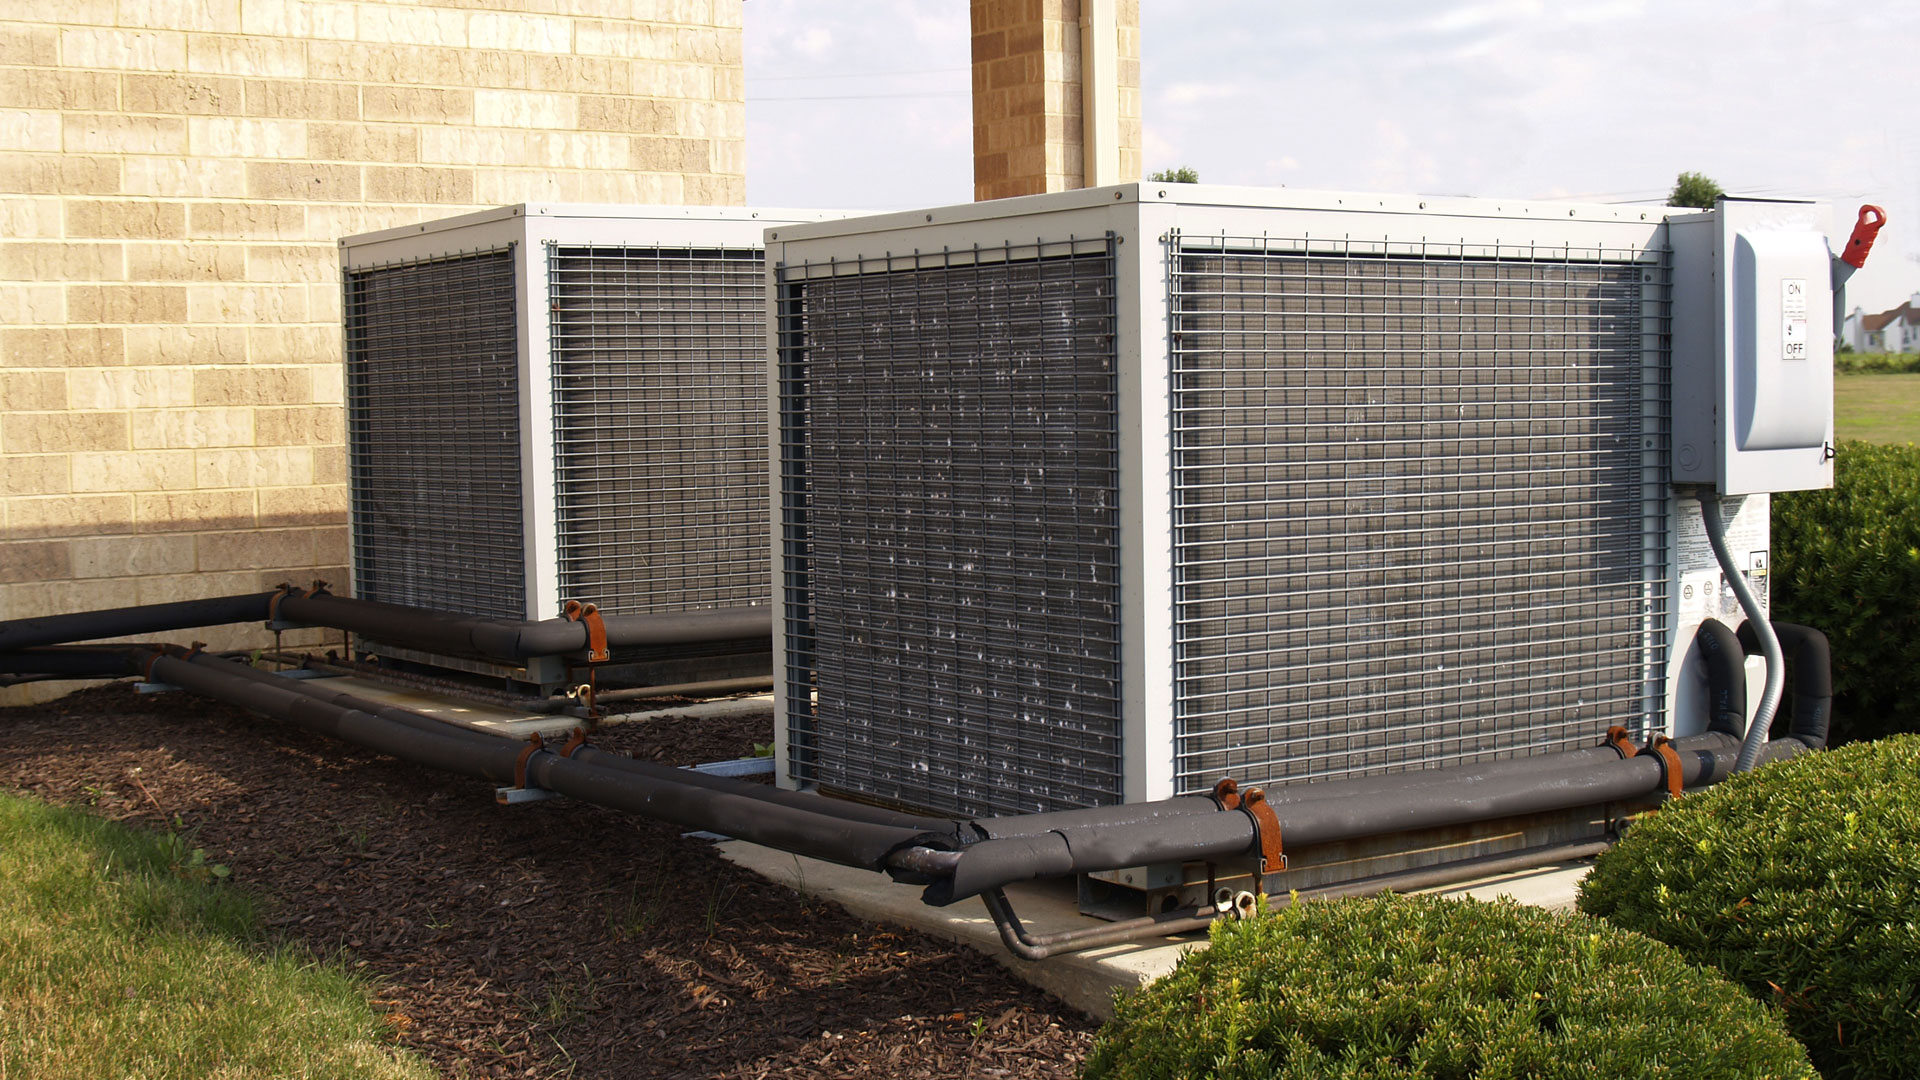 Port St Lucie Residential HVAC